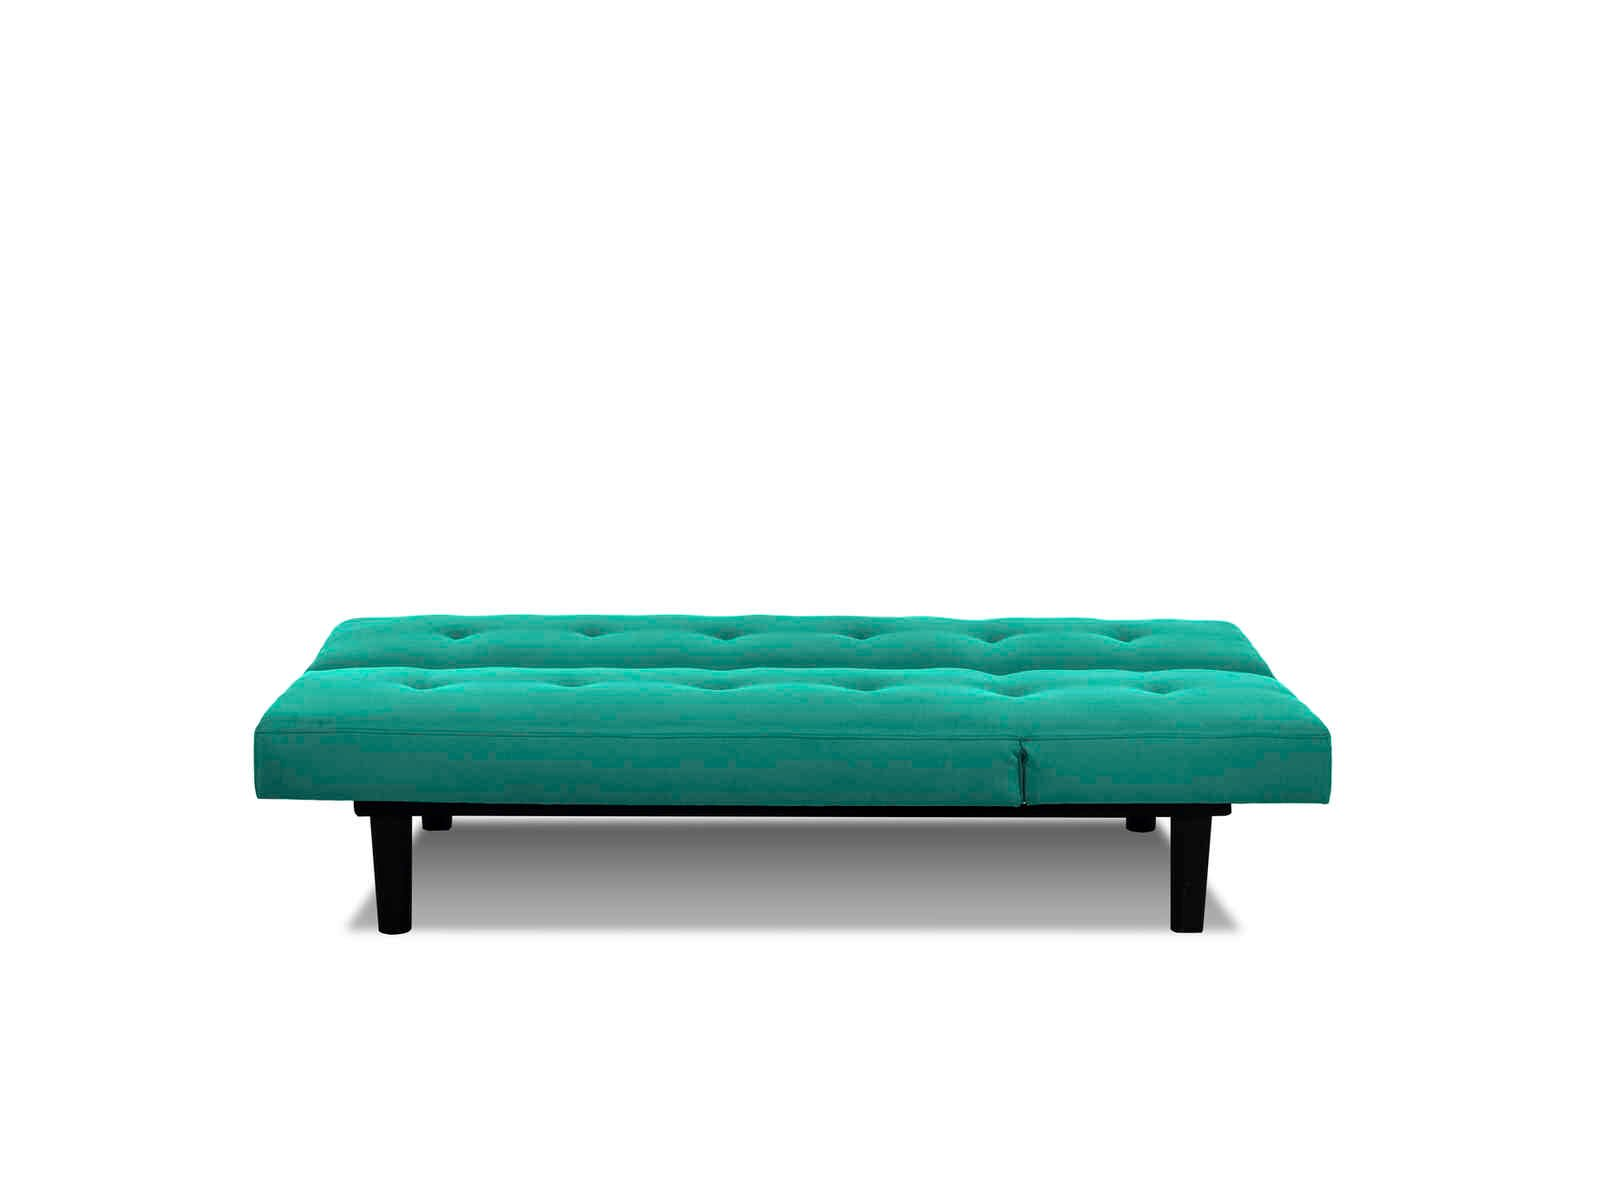 Mini Lounger Convertible Sofa Bed Teal By Serta Lifestyle